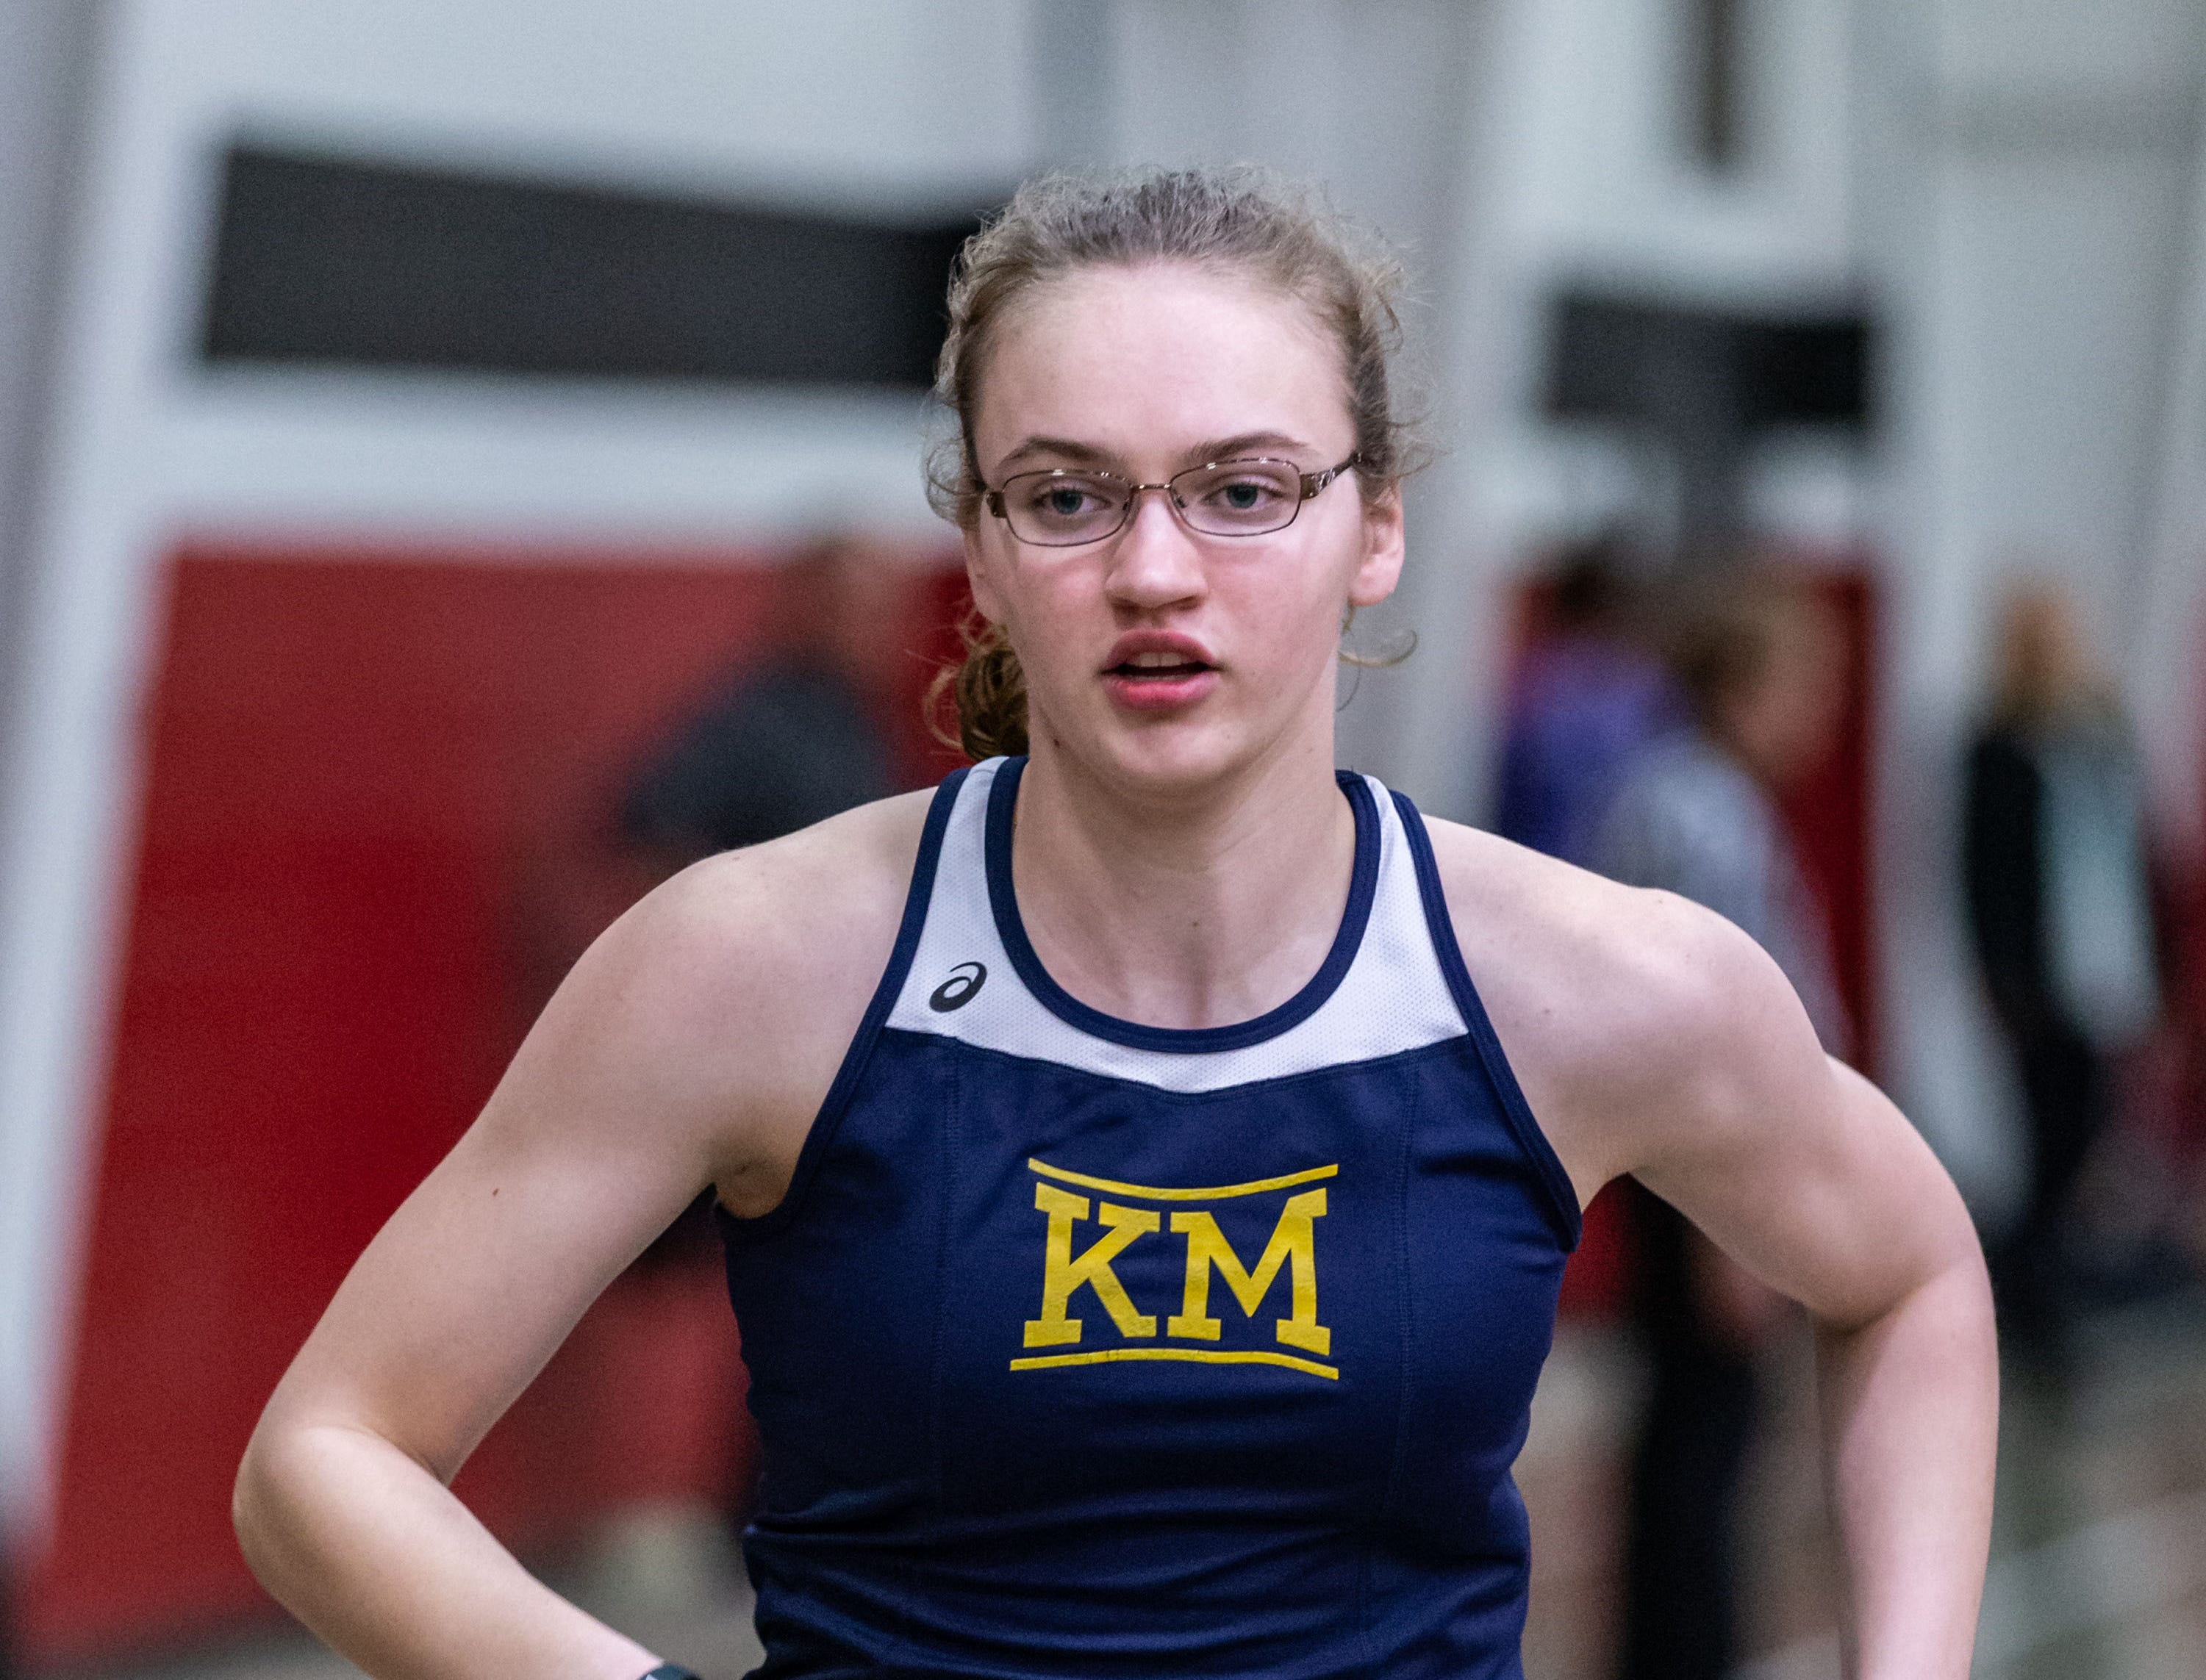 Kettle Moraine's Ellie Johnson competes in the 4x440 yard relay at the Peter Rempe Cardinal Relays hosted by Waukesha South on Thursday, March 21, 2019. Kettle Moraine placed second in the event with a time of 4:31.29.